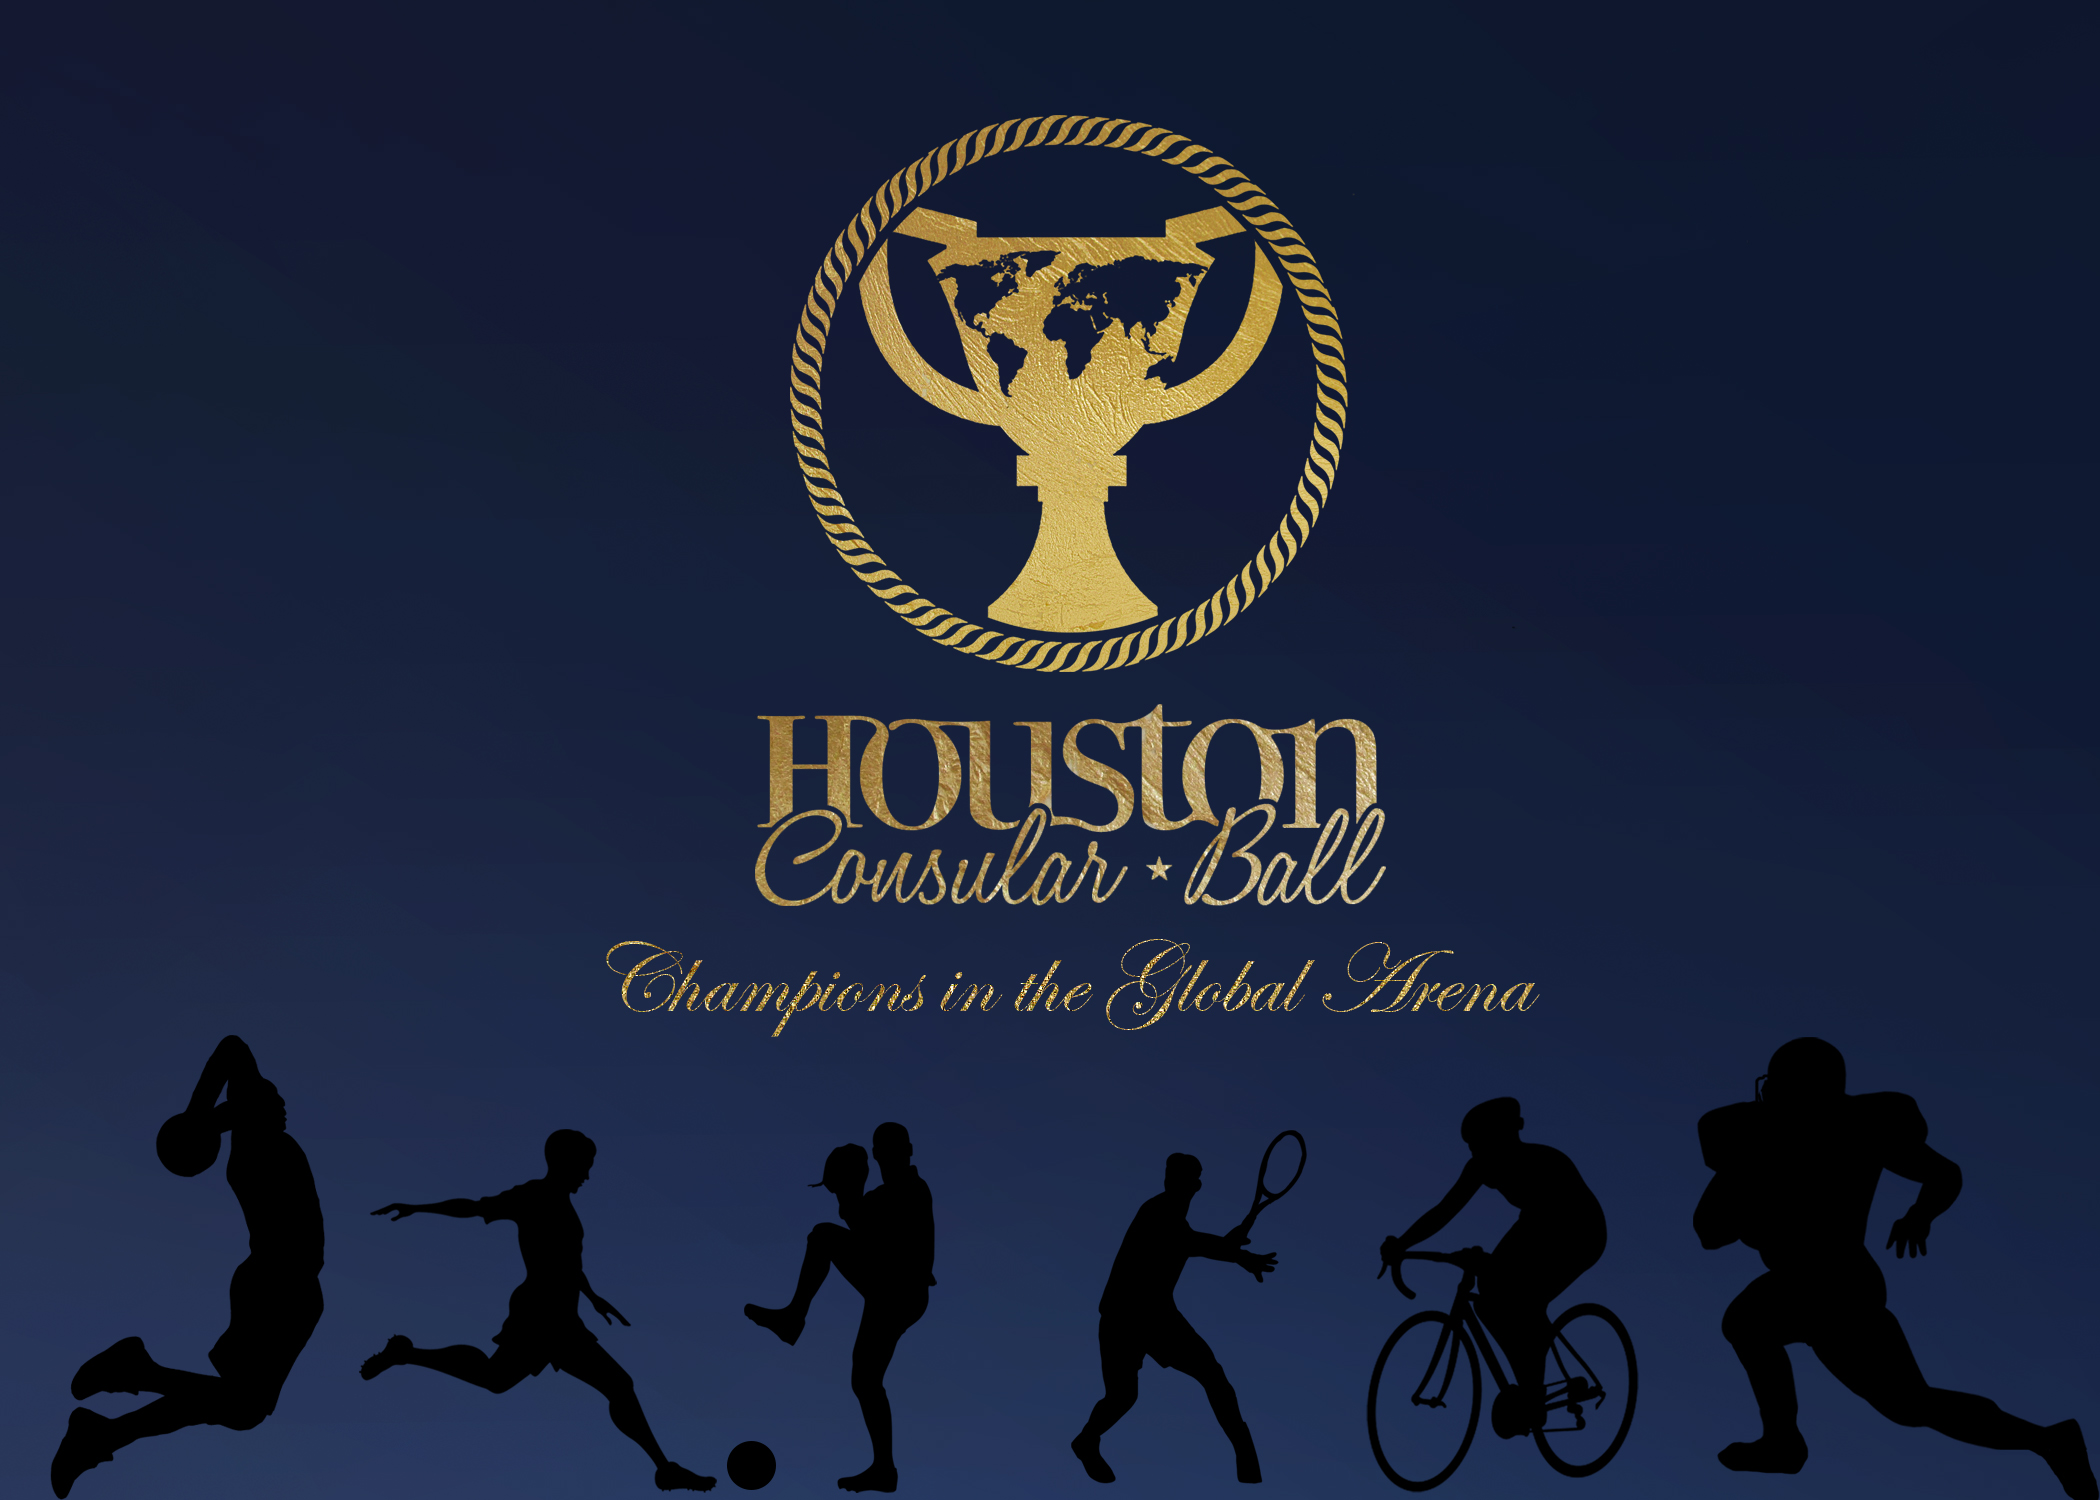 Houston Consular Ball 2016Invitation